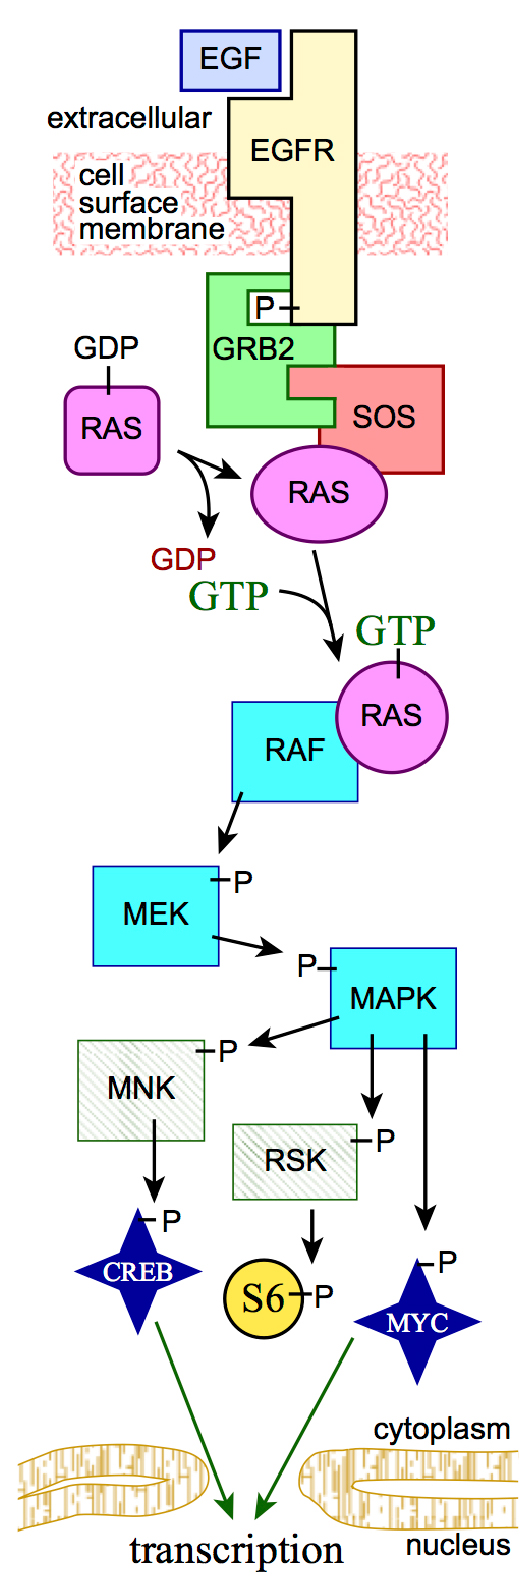 The Ras Signalling pathway